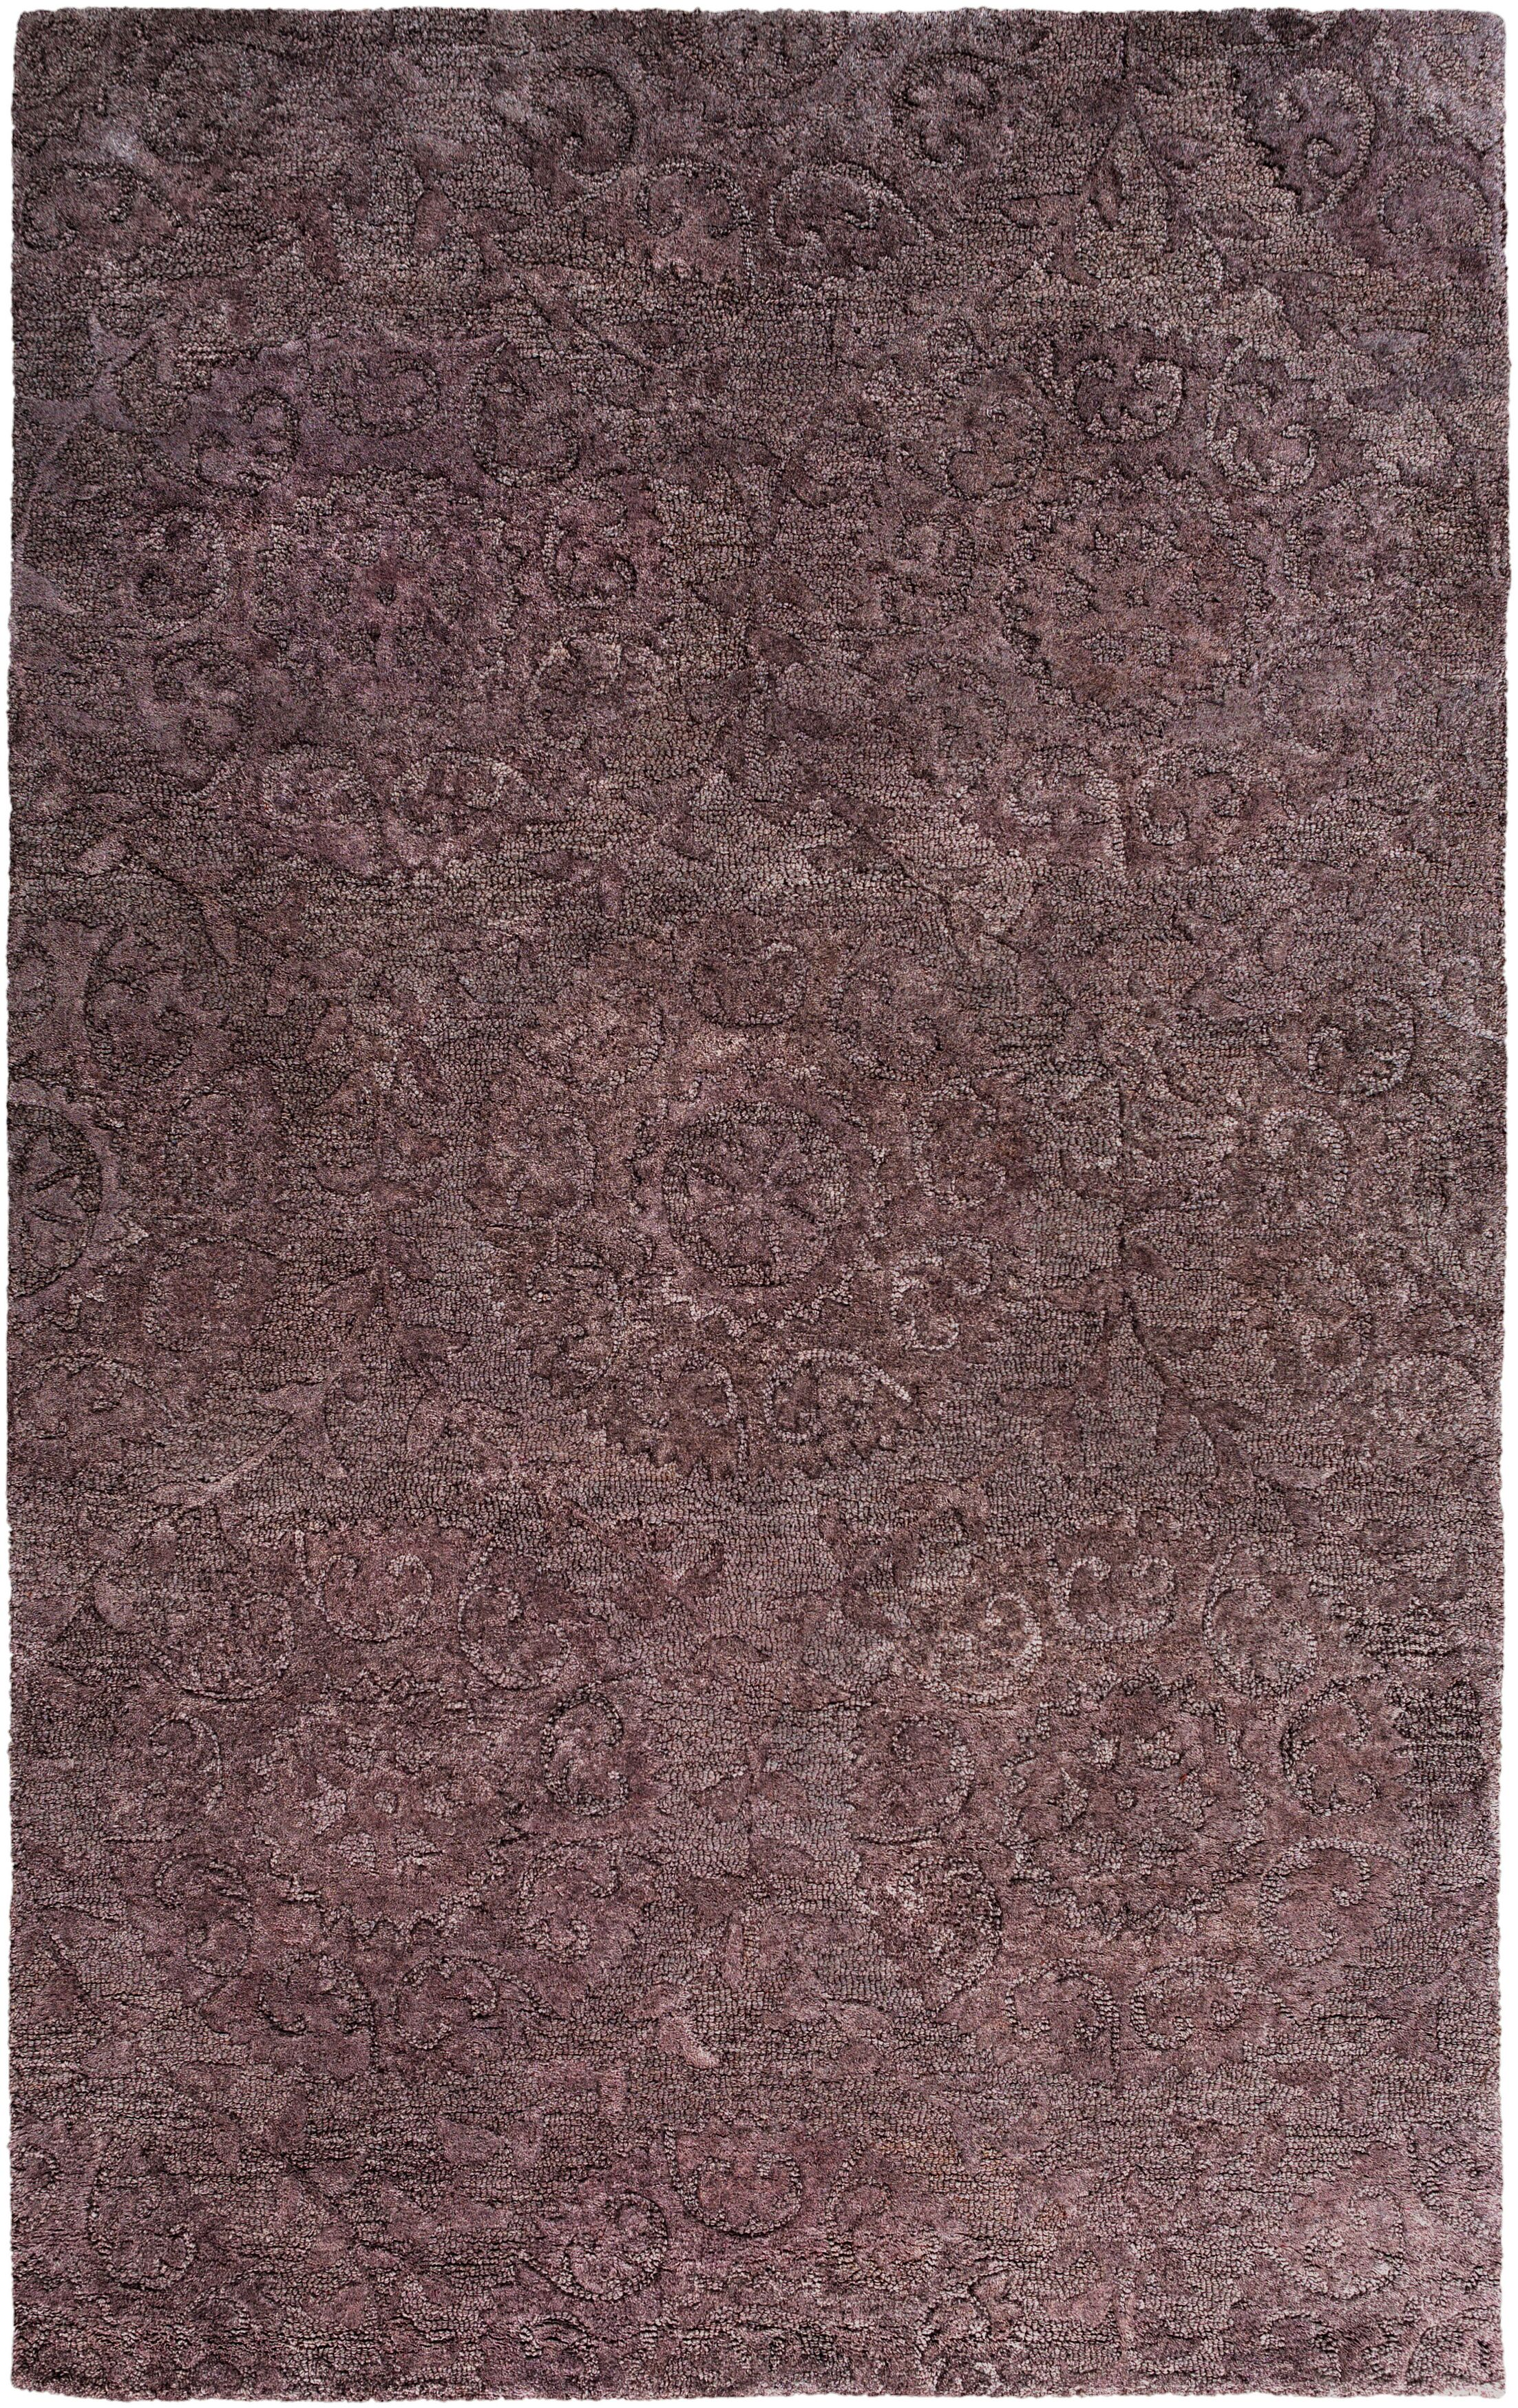 Oss Hand Tufted Synthetic/Wool Purple Area Rug Rug Size: Rectangle 8' x 10'